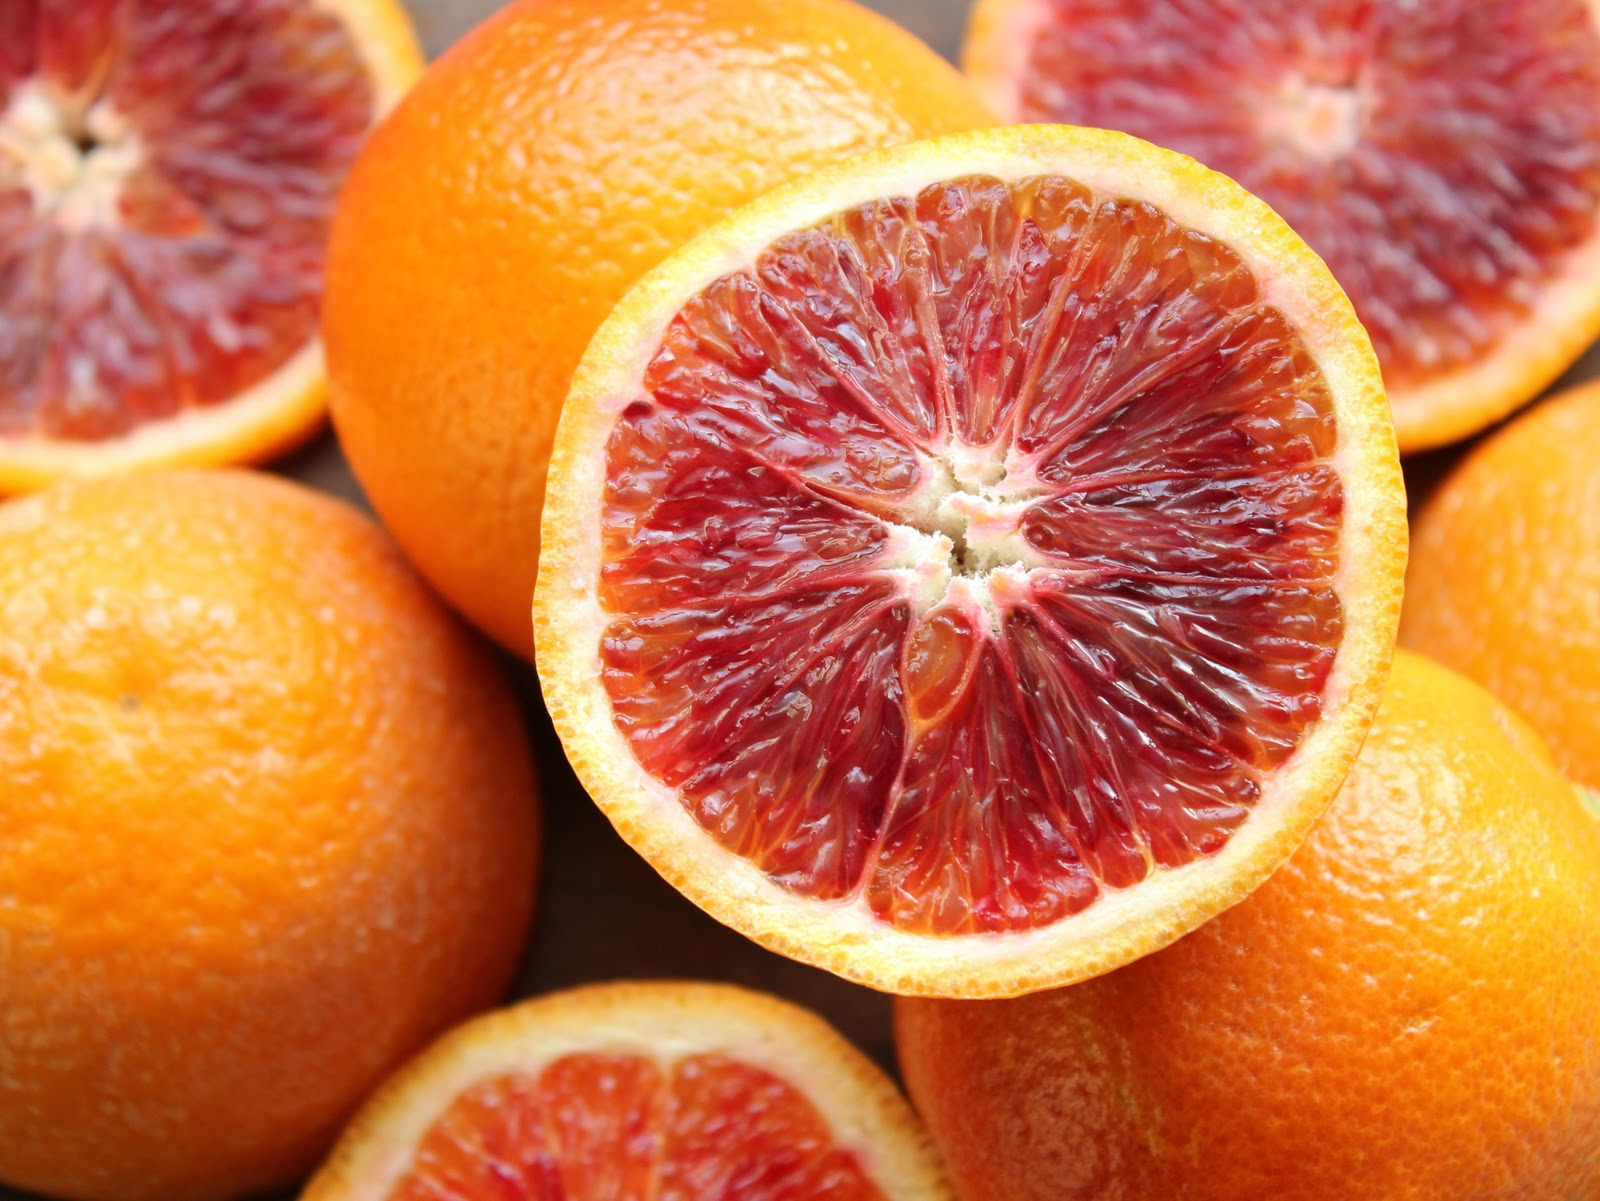 070 blood oranges